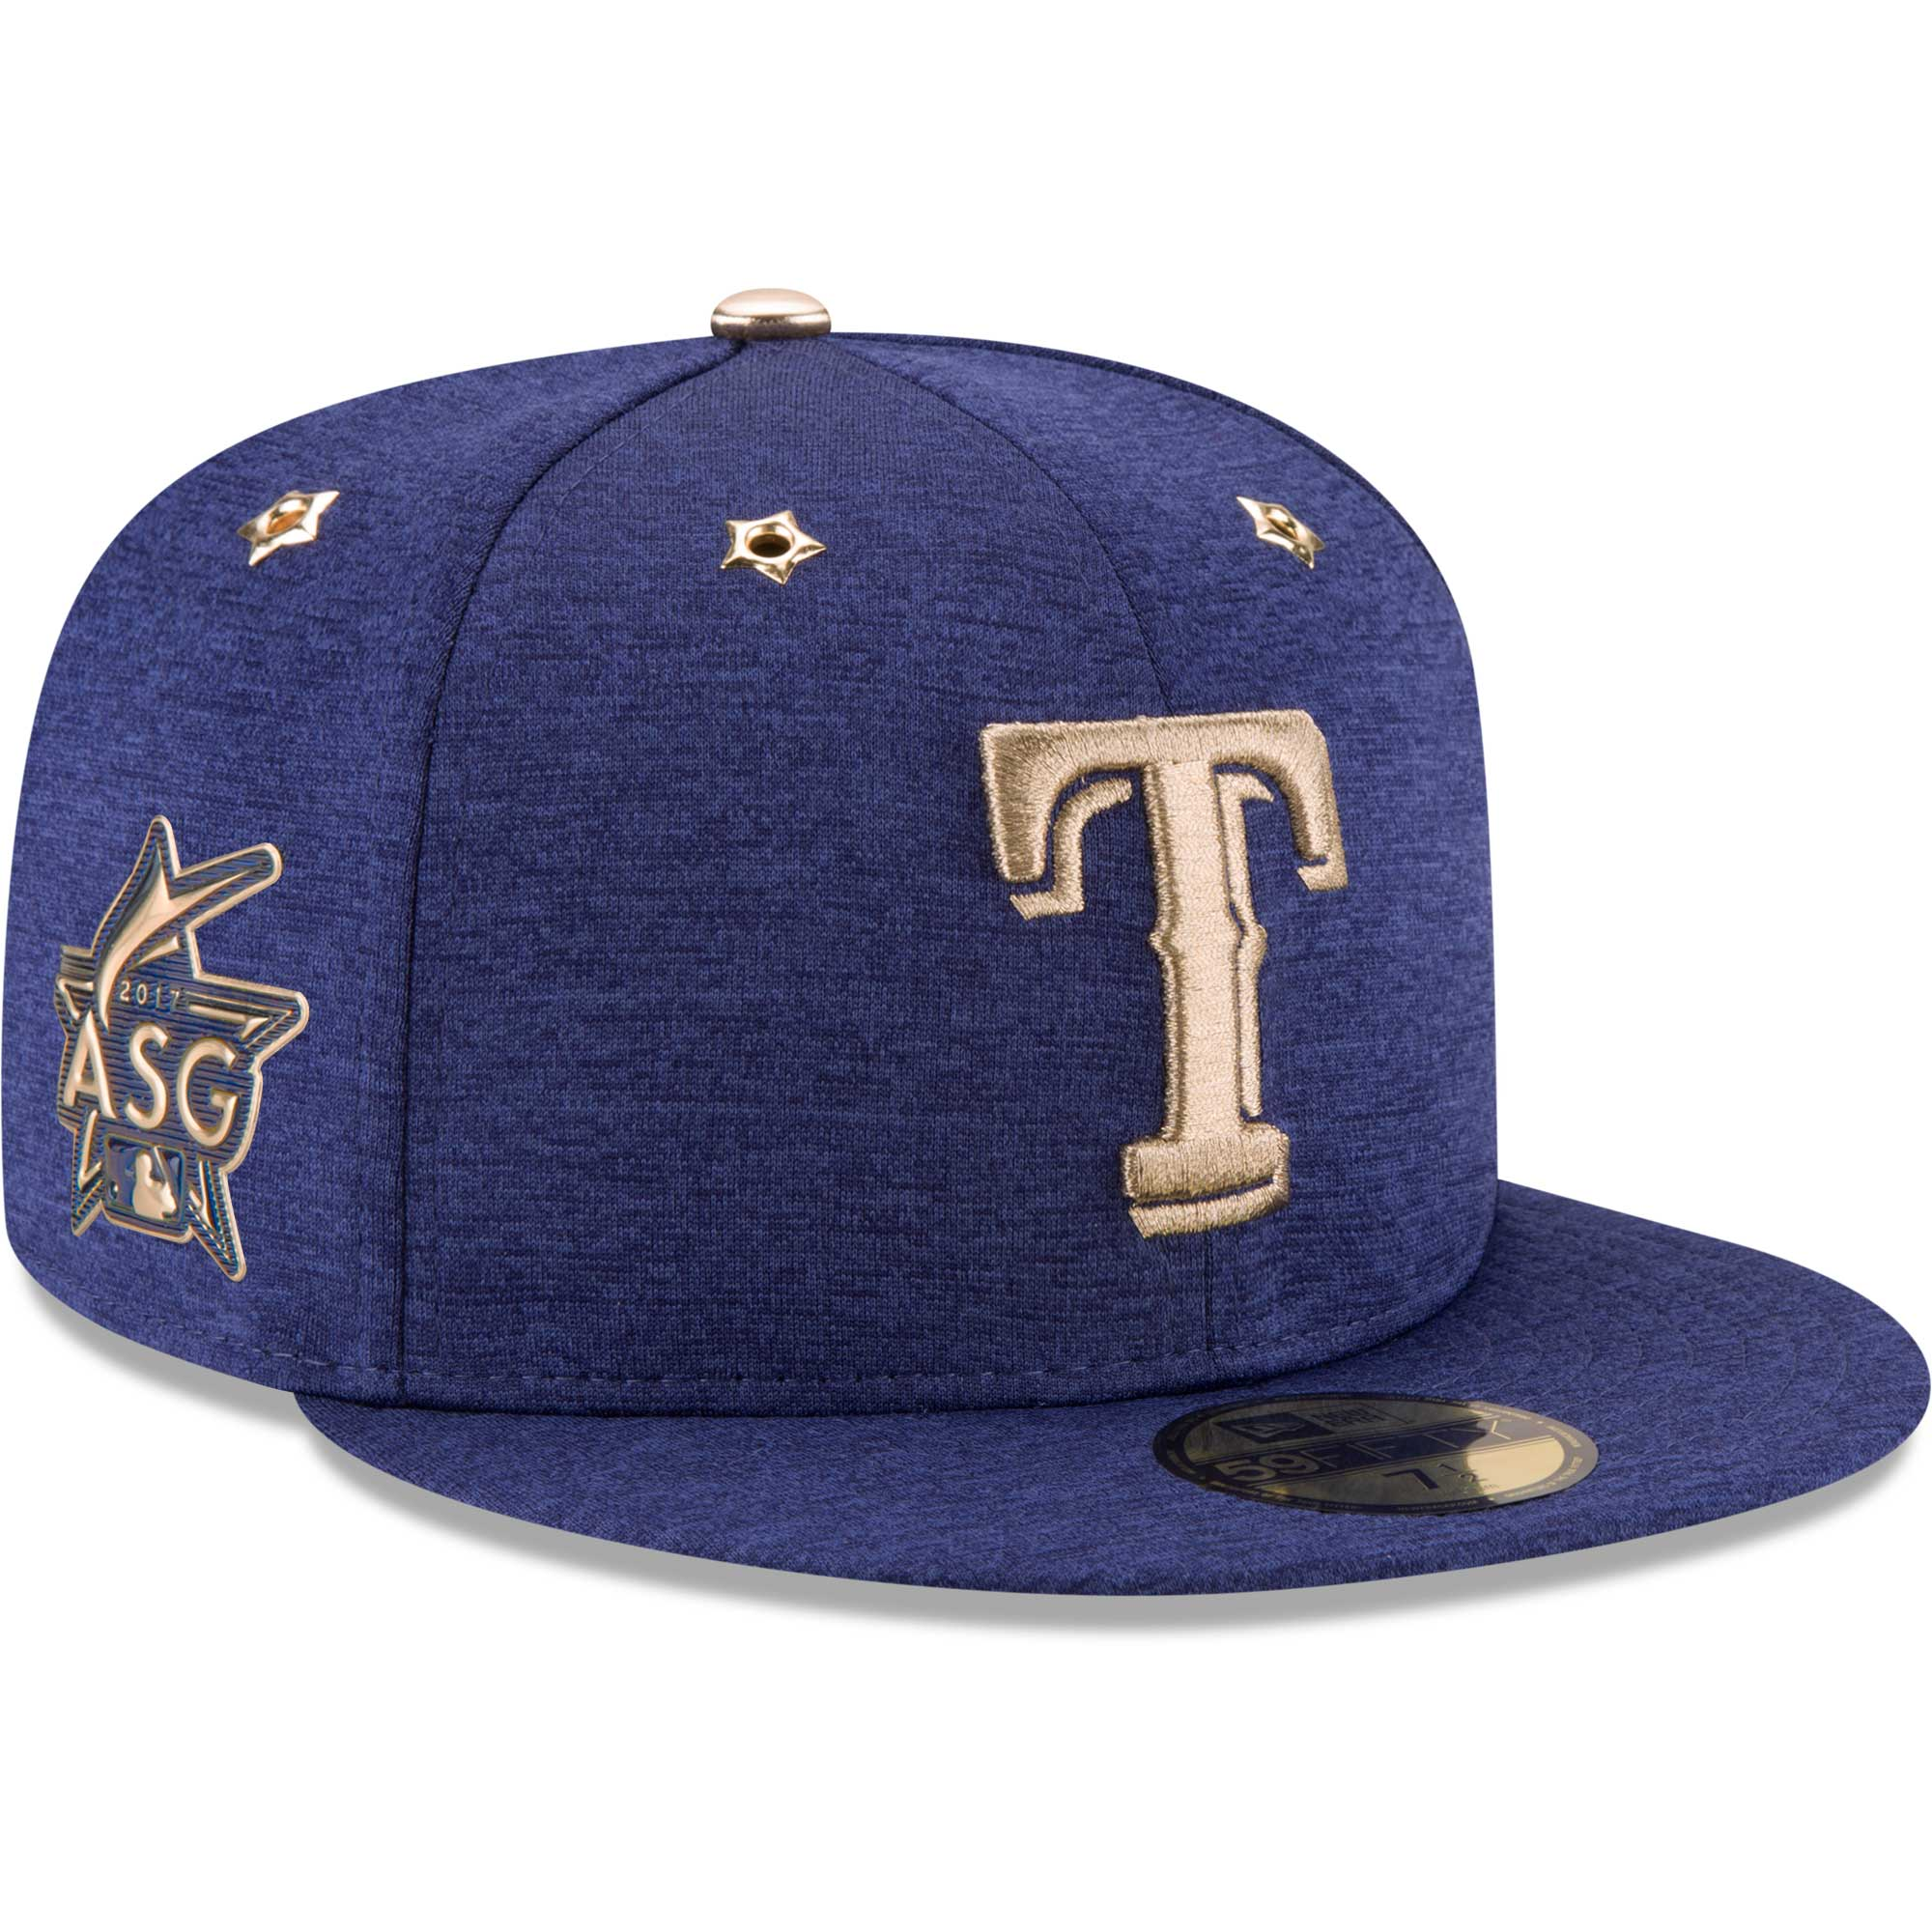 Texas Rangers New Era 2017 MLB All-Star Game Side Patch 59FIFTY Fitted Hat - Heathered Royal